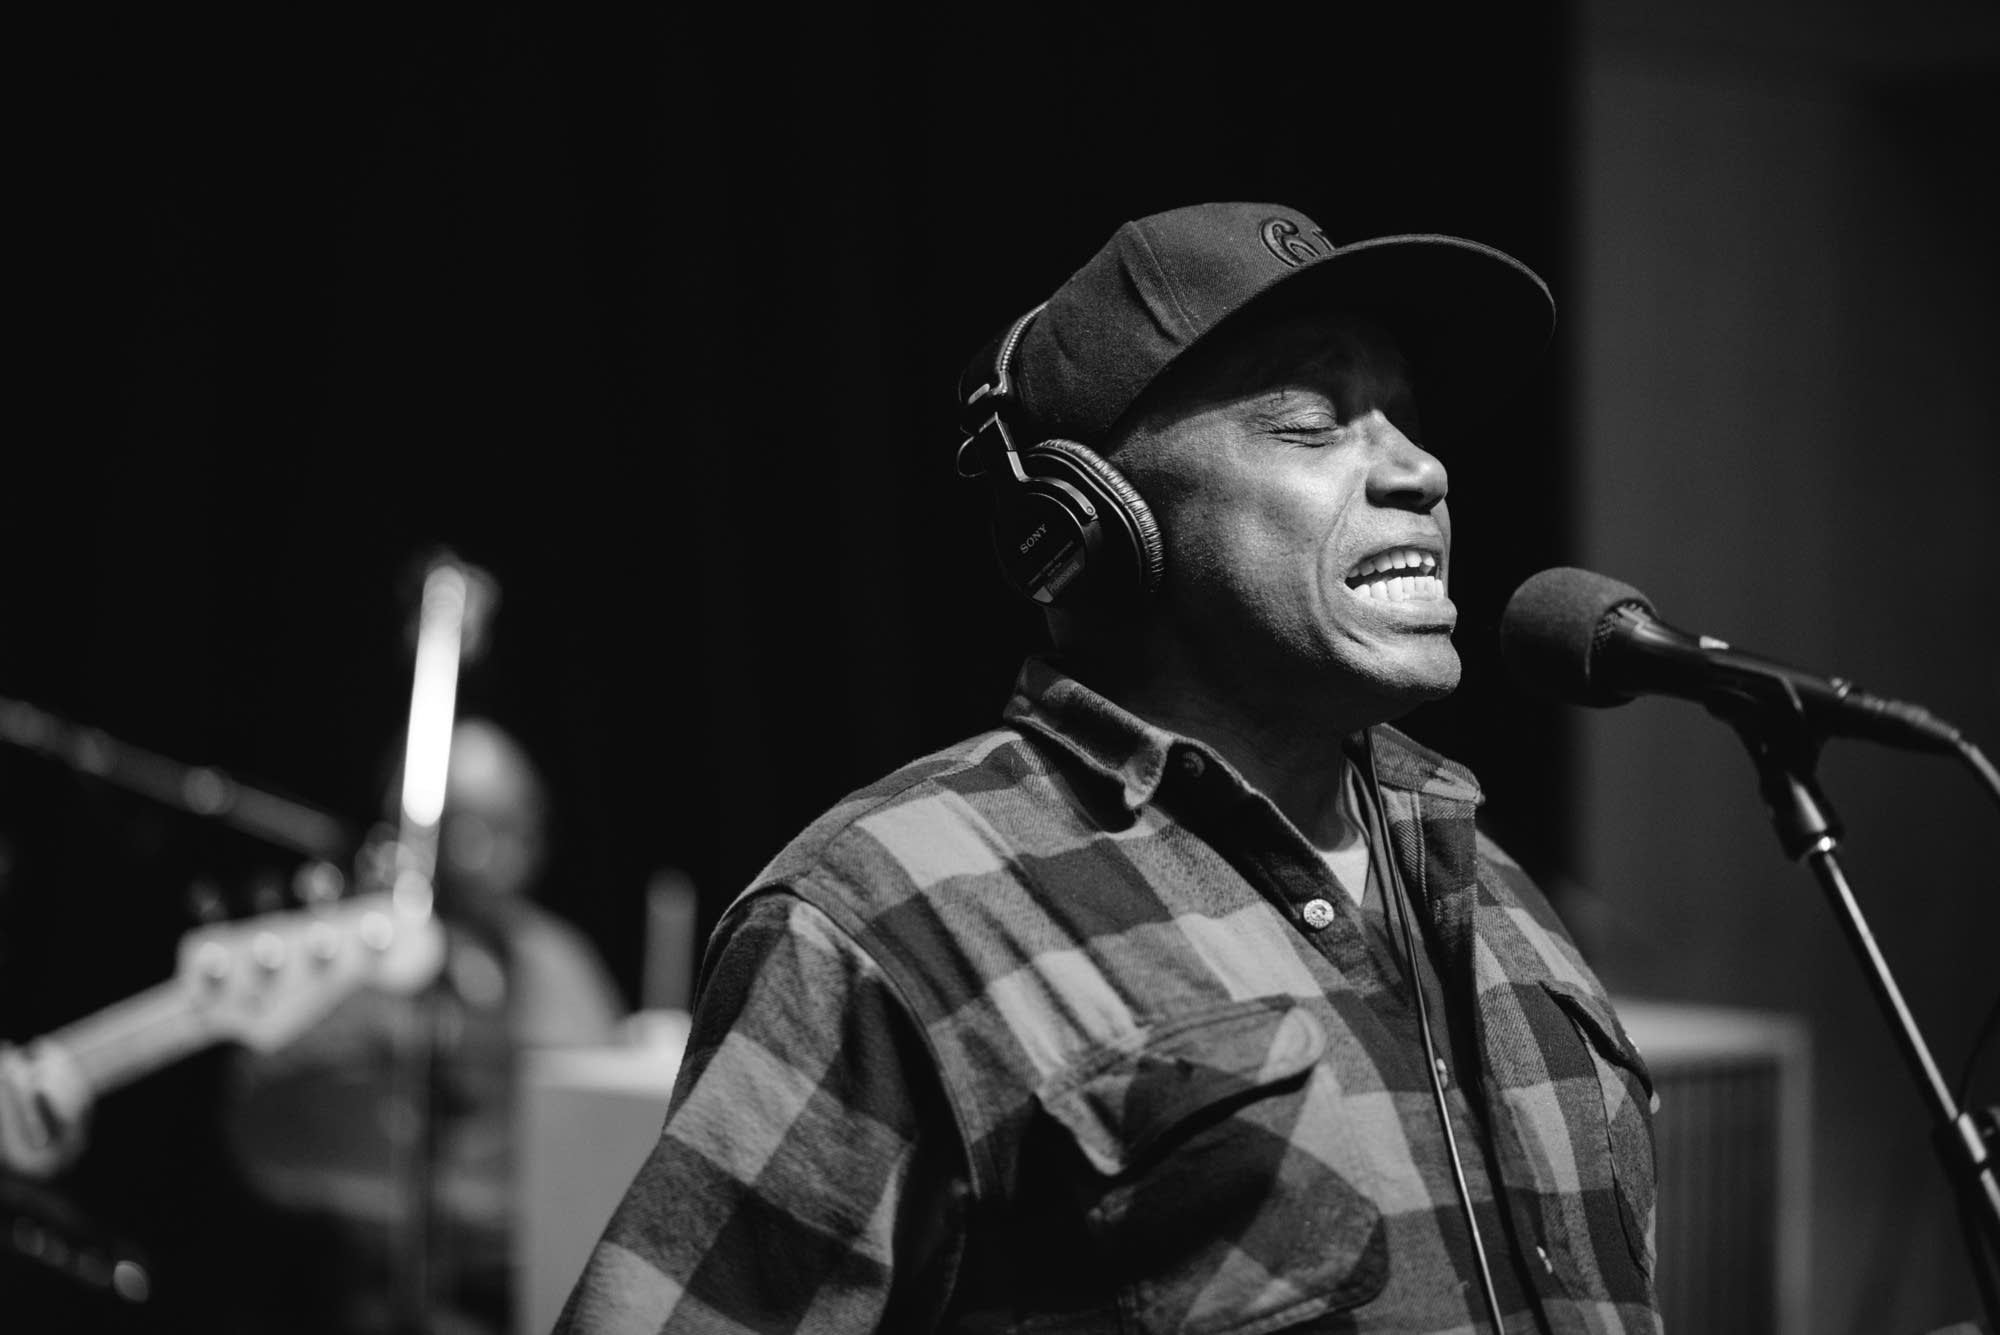 Sonny Knight performs at The Current